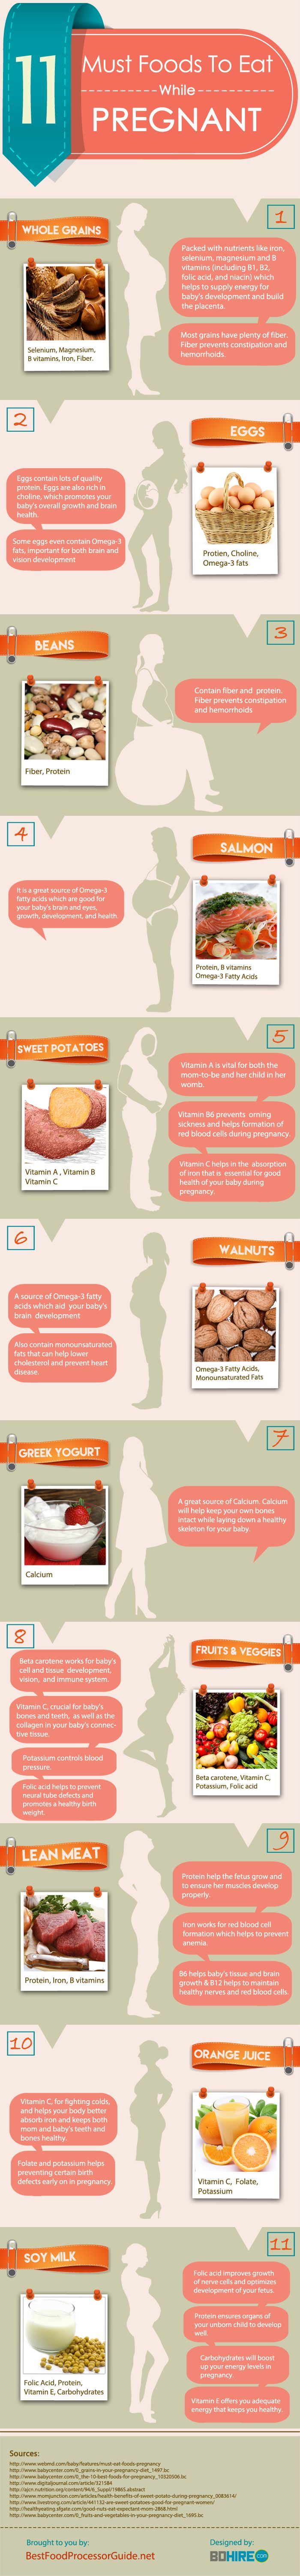 Have you had these 11 recommended foods for pregnant women? || Visualistan